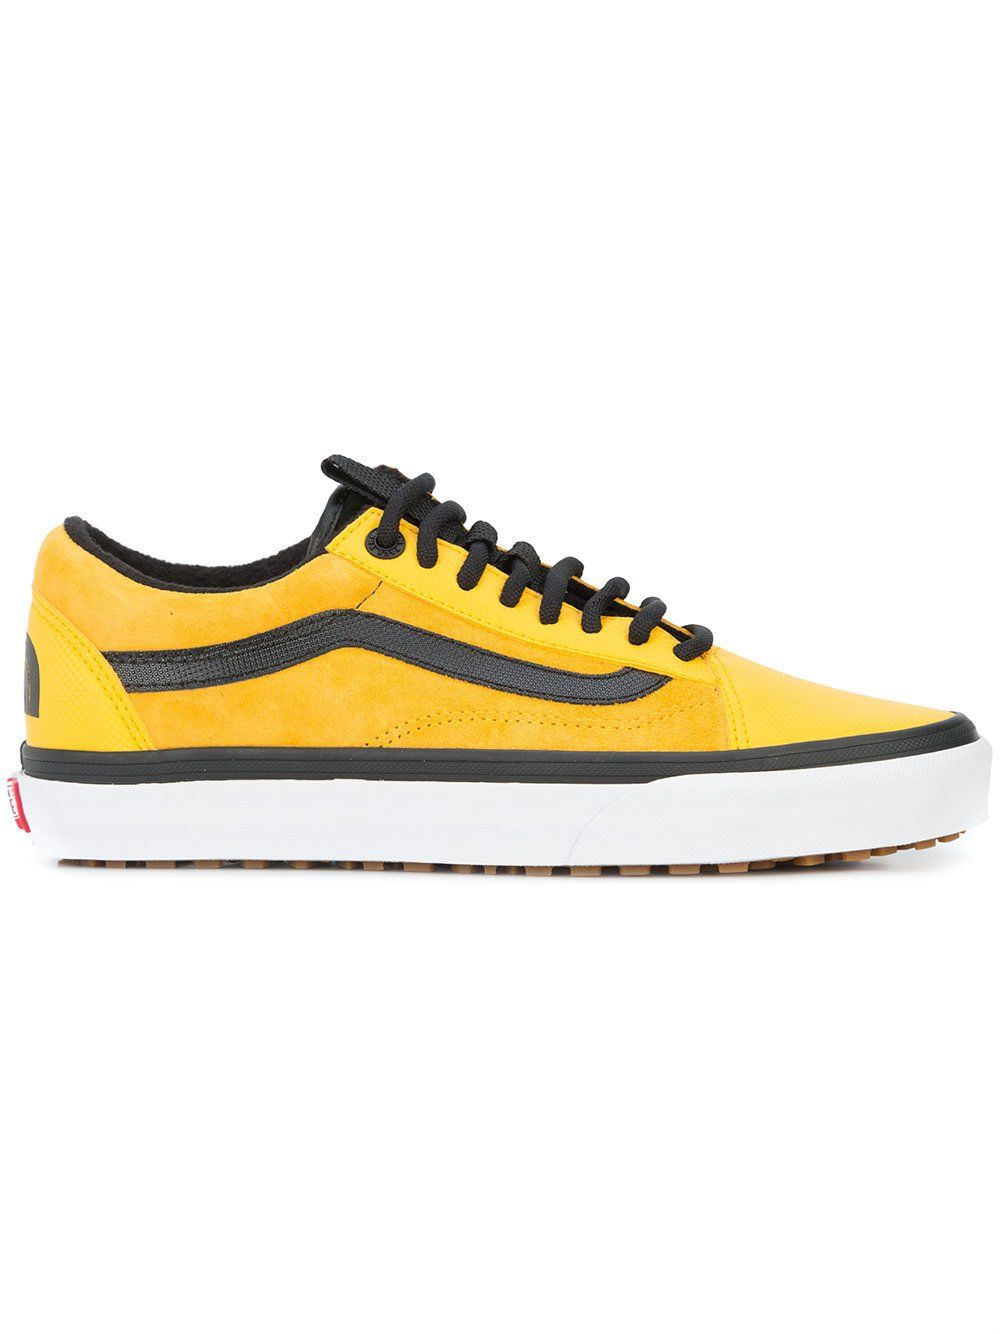 Vans x North Face Old Skool MTE DX Yellow Black  ecd44f736